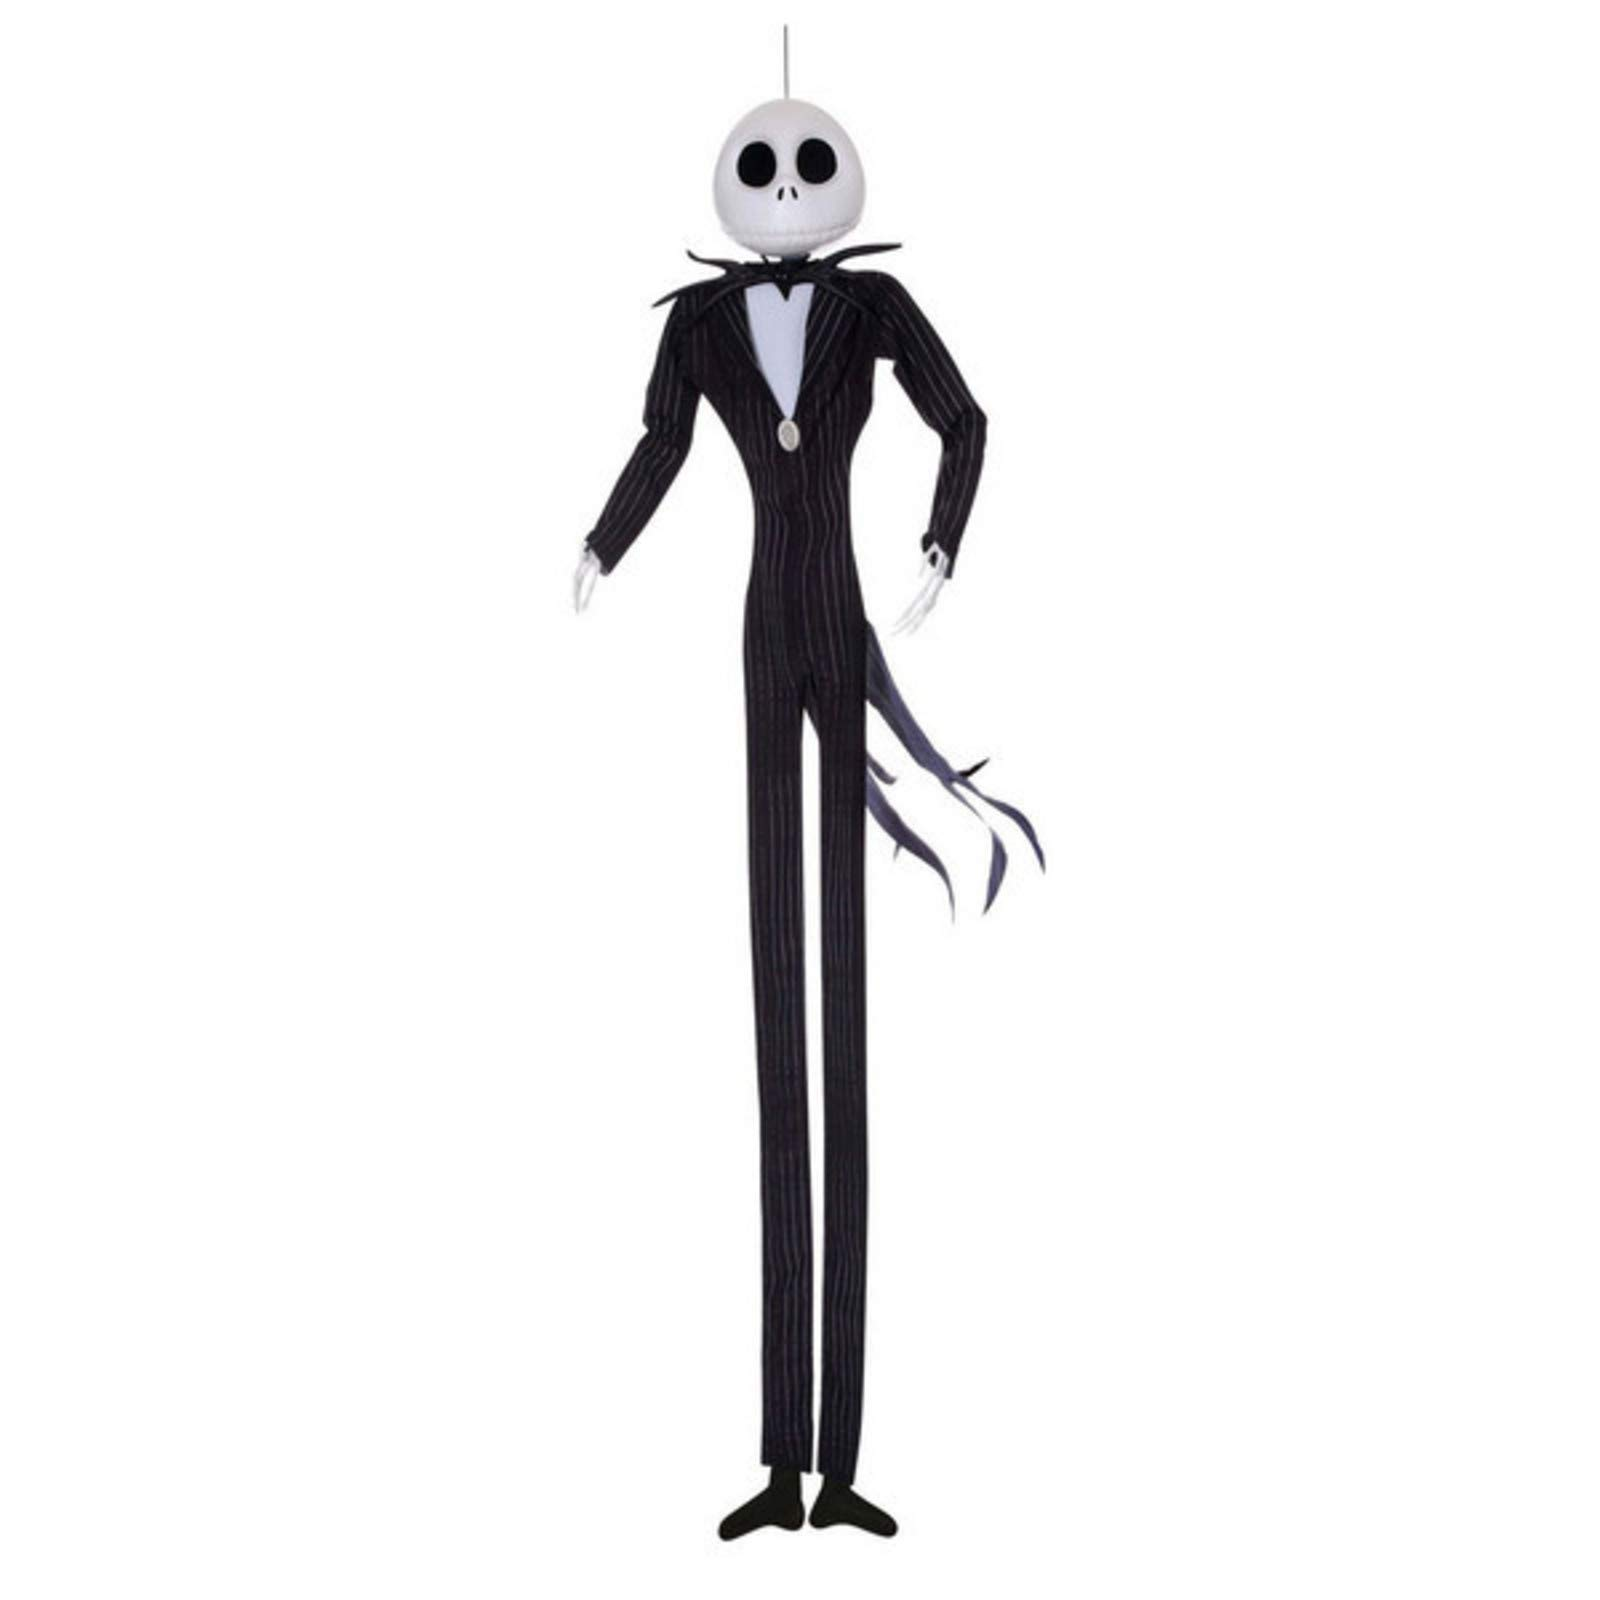 Disney The Nightmare Before Christmas Jack Skellington Full Size Posable Hanging Character Decoration by Disney